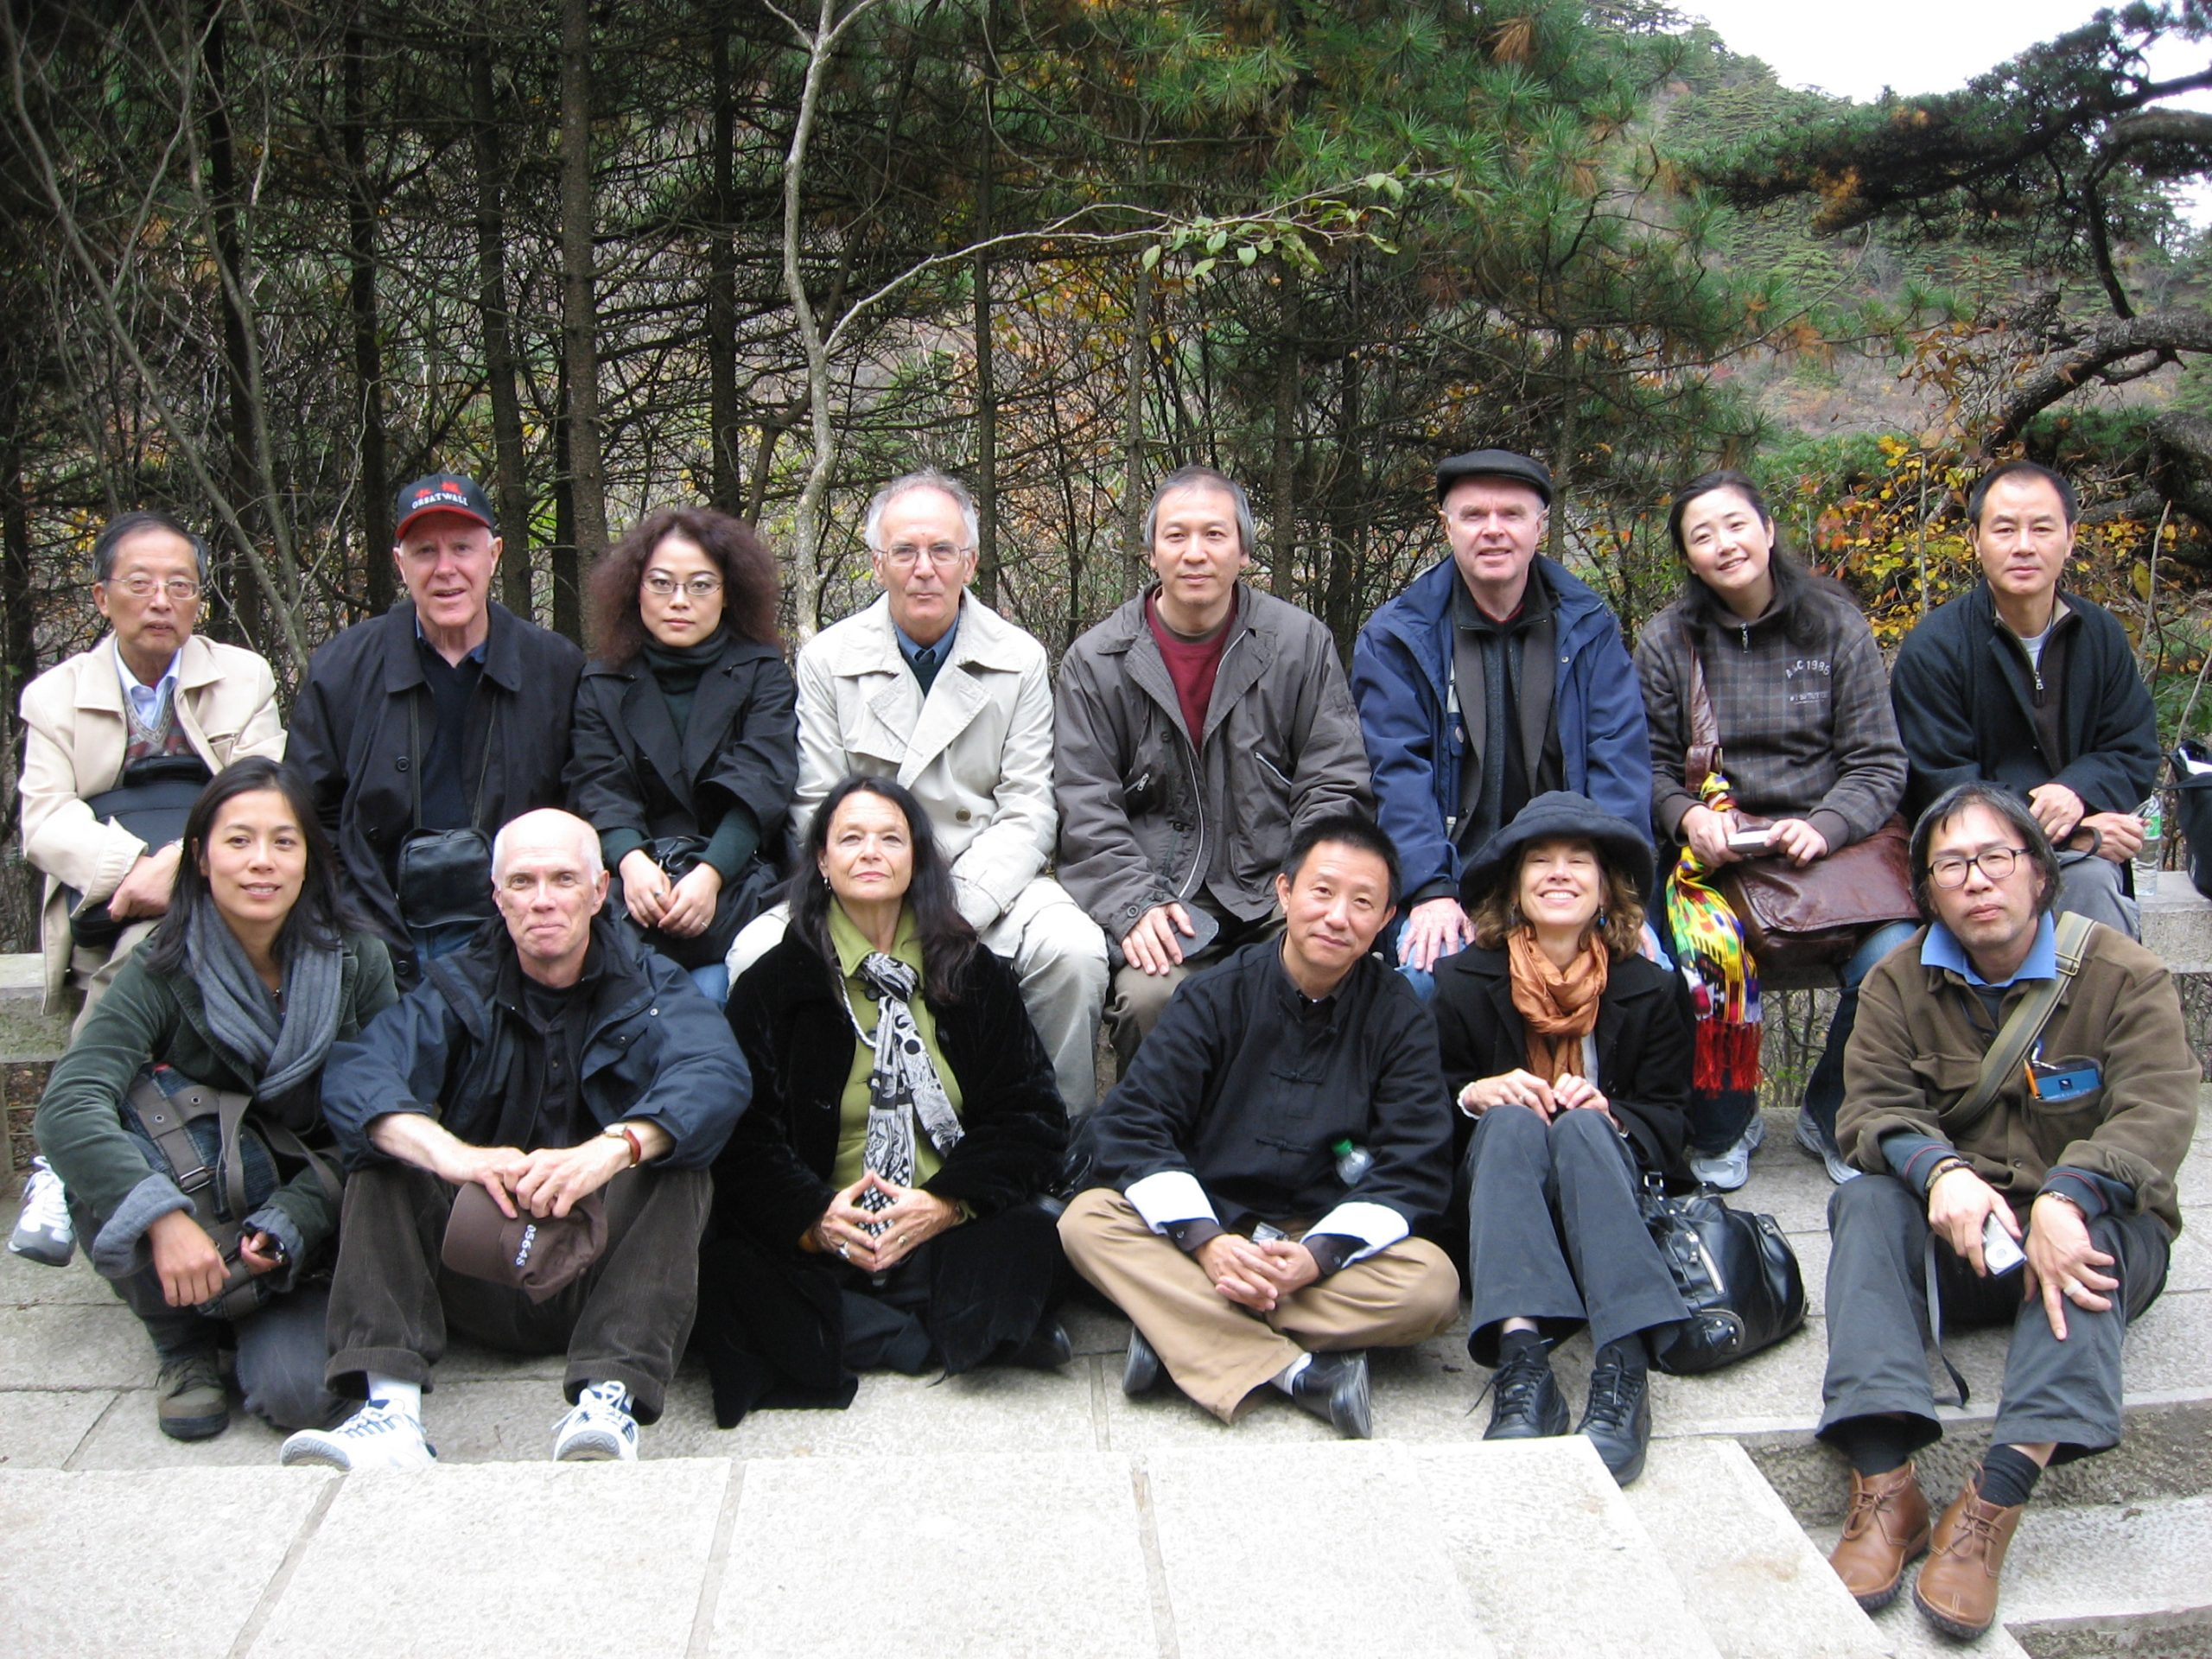 Anne in China with poets taking part in the 2008 Pamirs Academy international poetry conference. Back row (from l.): Zhang Ziching (professor and translator of Allen Ginsberg), Robert Hass, Liang Li-zhen (interpreter), Tomaž Šalamun, Song Lin, Tim Lilburn, Lan Lan, Wang Jiaxin; front row: unnamed artist girlfriend of Xi Chuan, Ron Padgett, Anne Waldman, Ouyang Jianghe, Brenda Hillman, Xi Chuan. Missing: Juan Carlos Mestre and Yu Jian, who possibly took the photo.